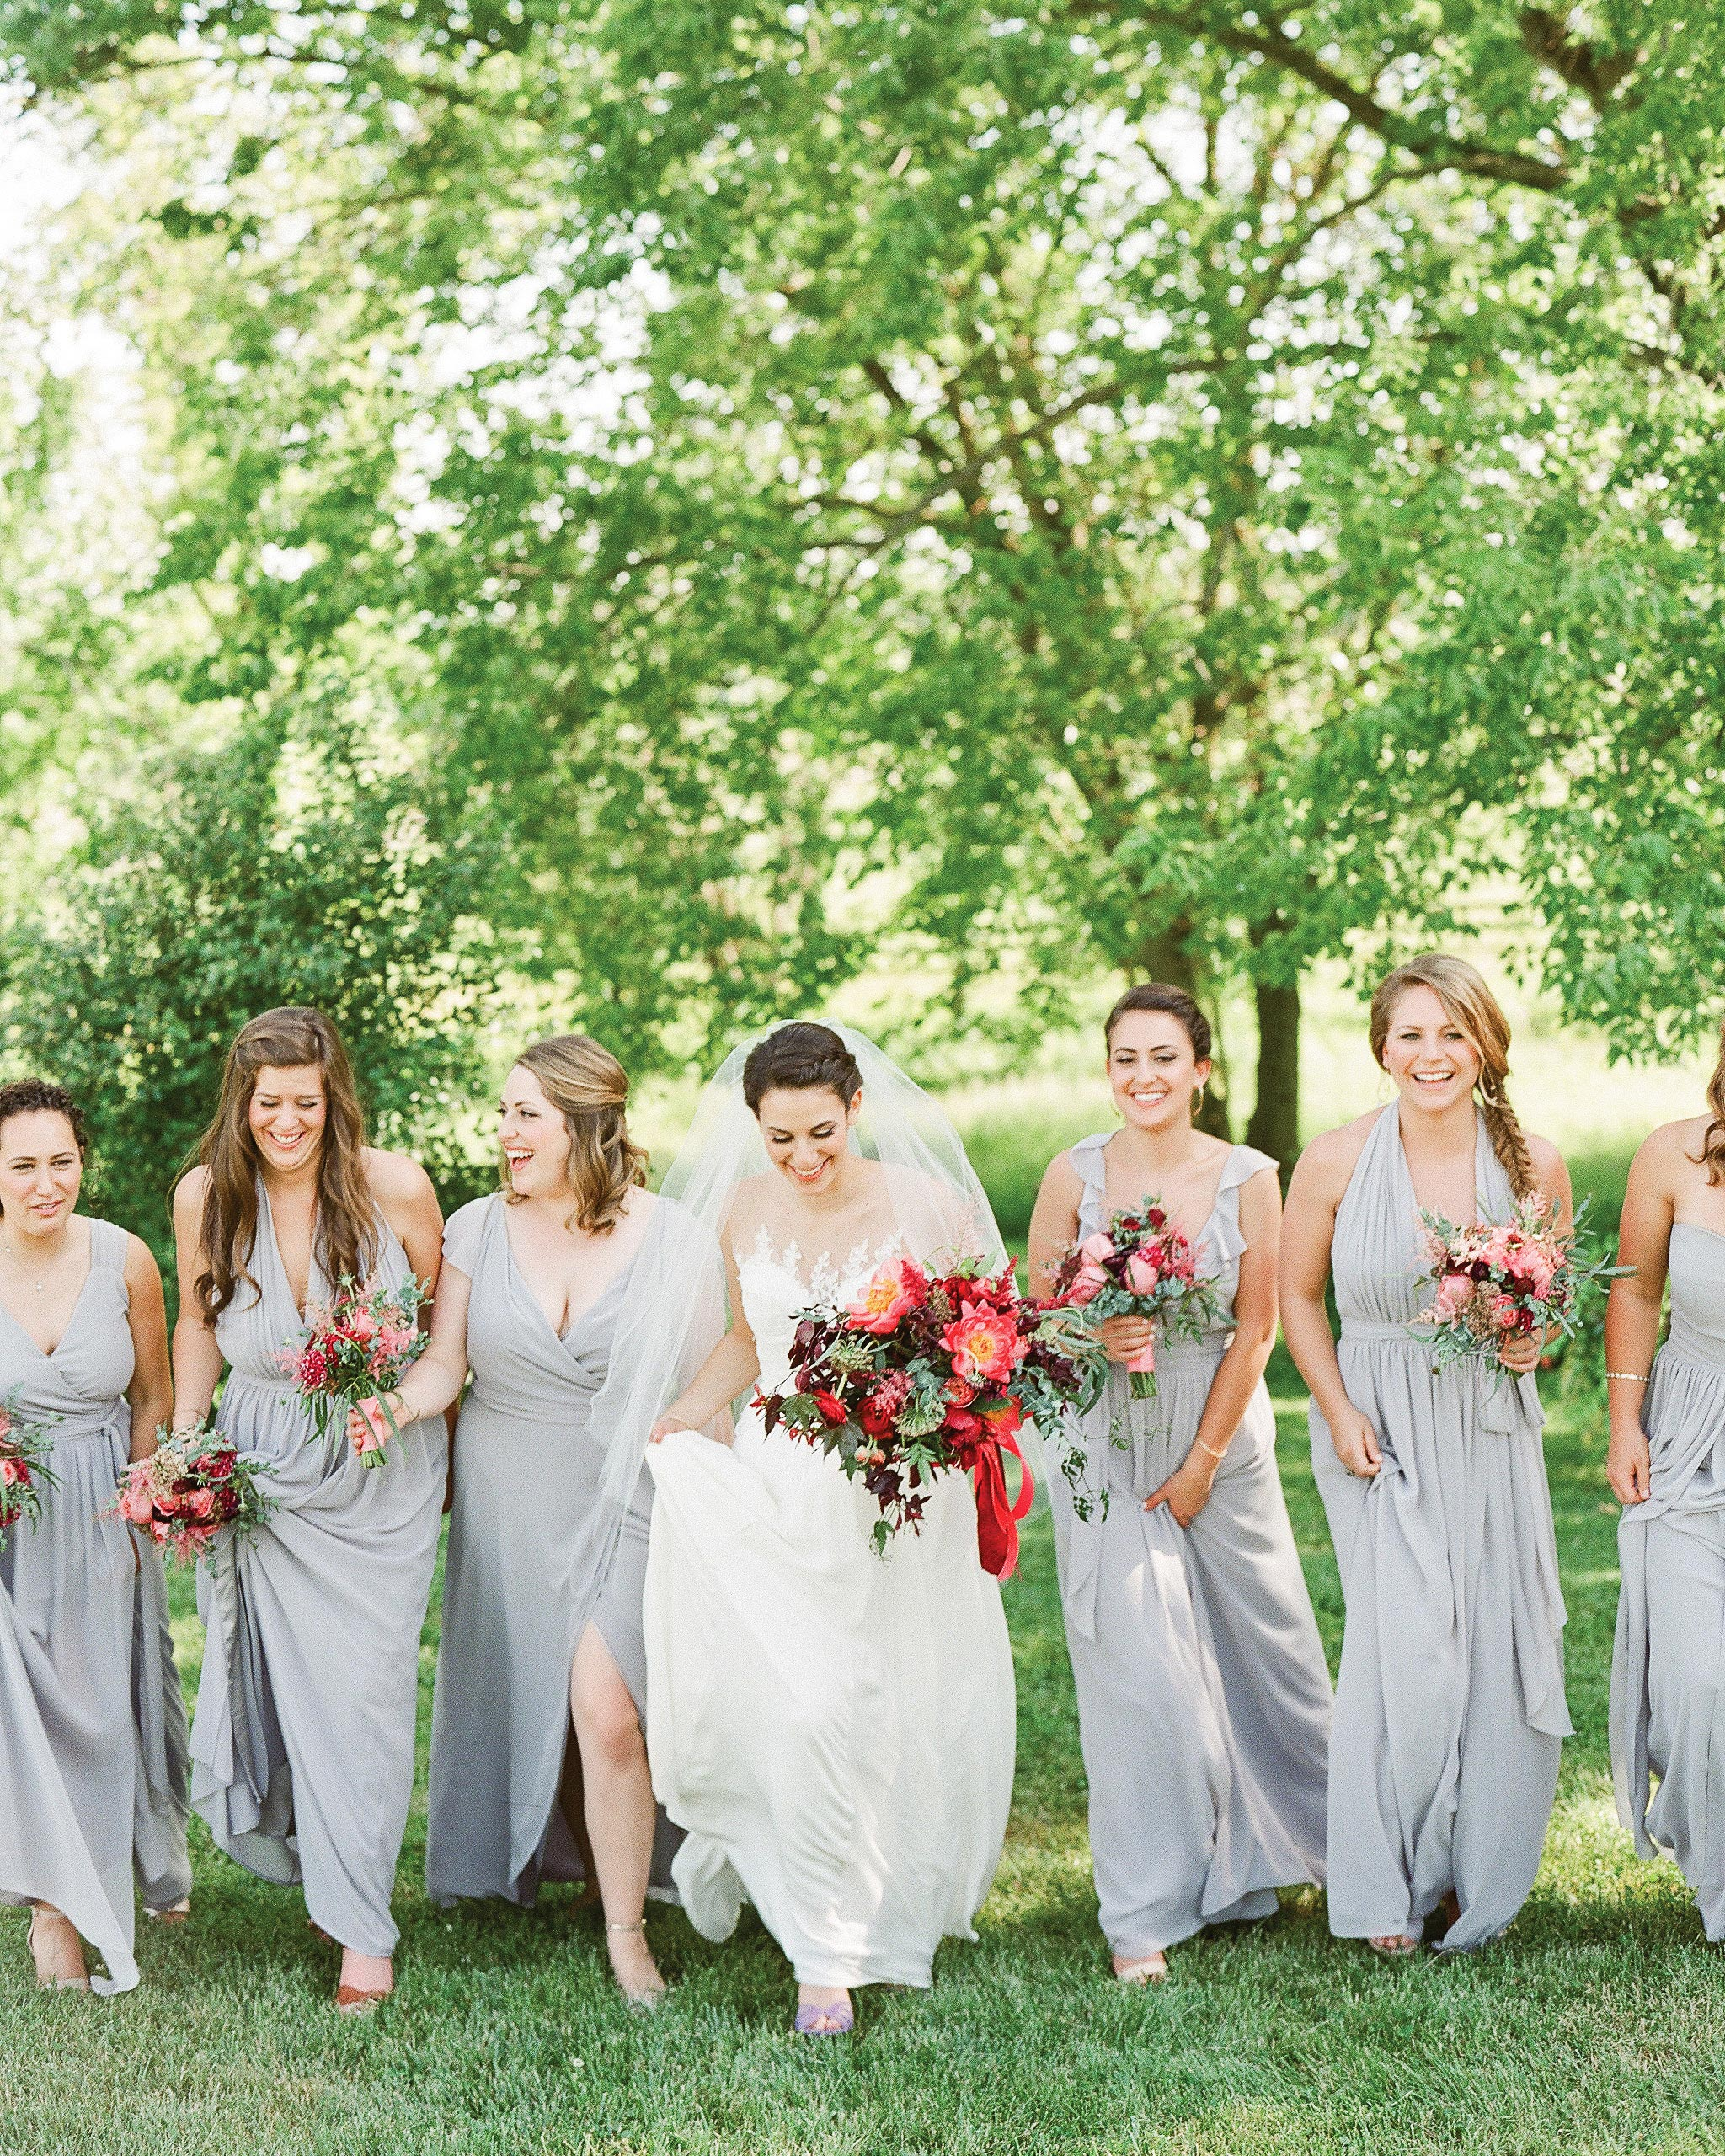 Gray Bridesmaids' Dresses